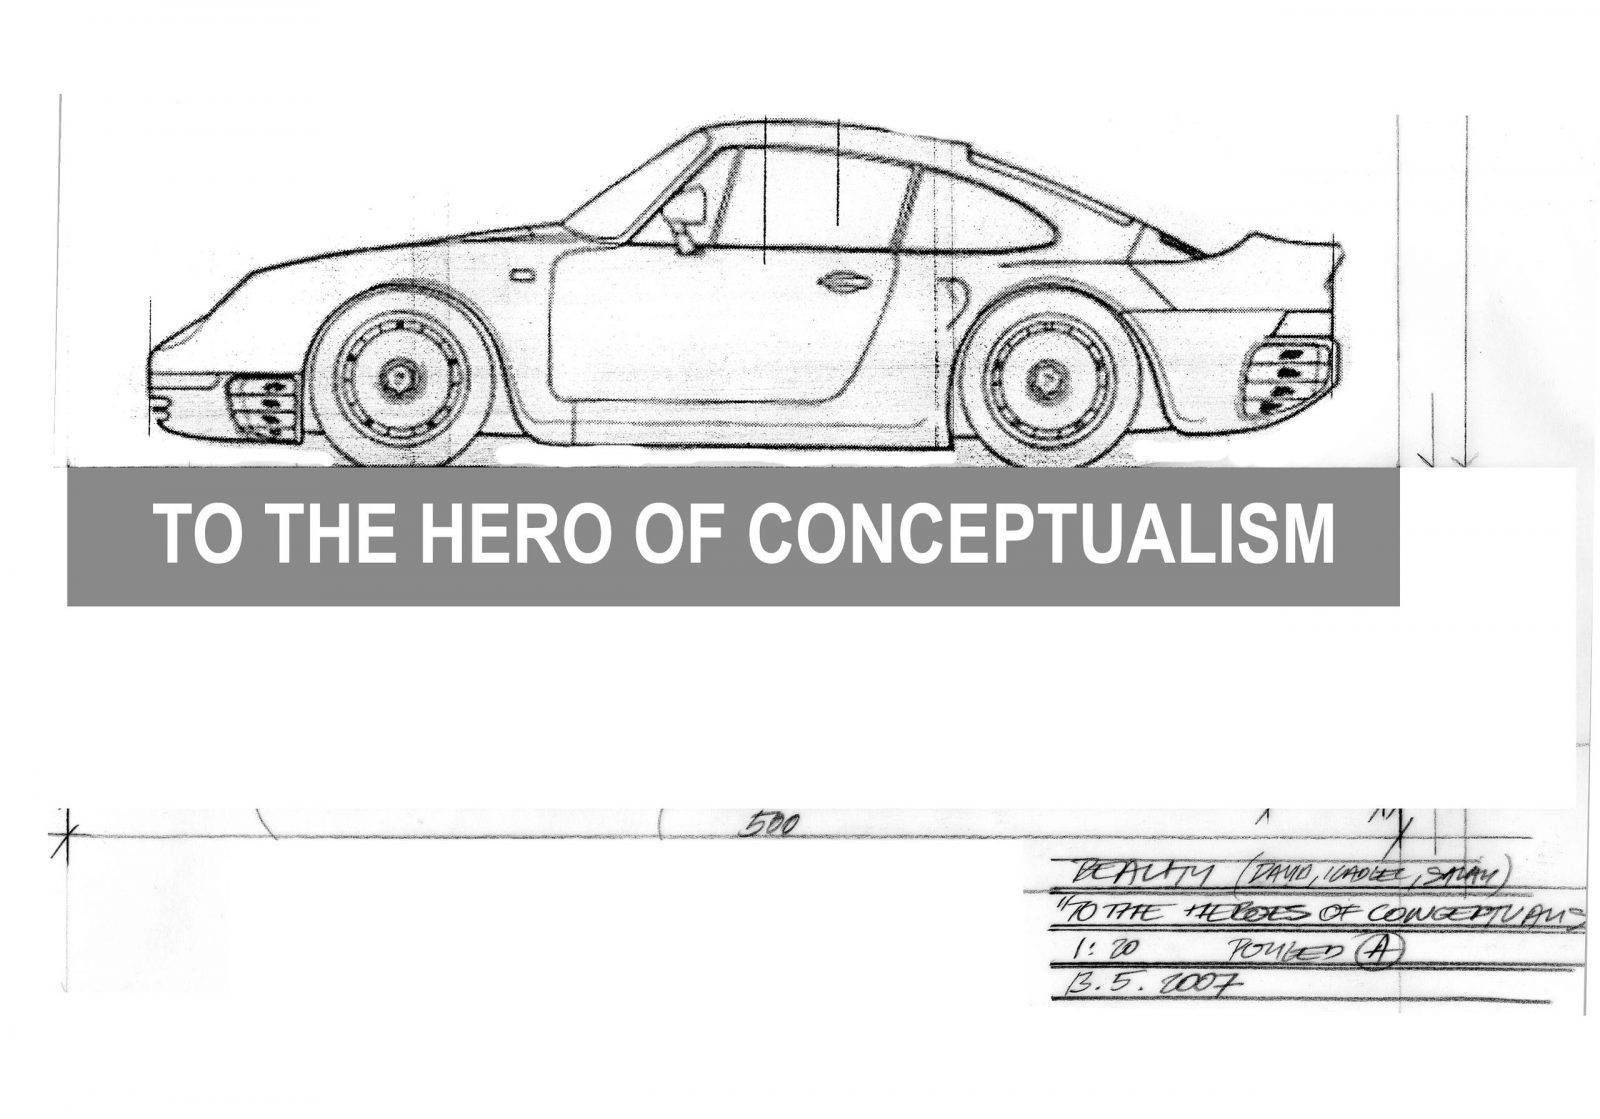 To the Hero of the Conceptualism by Jan Kadlec